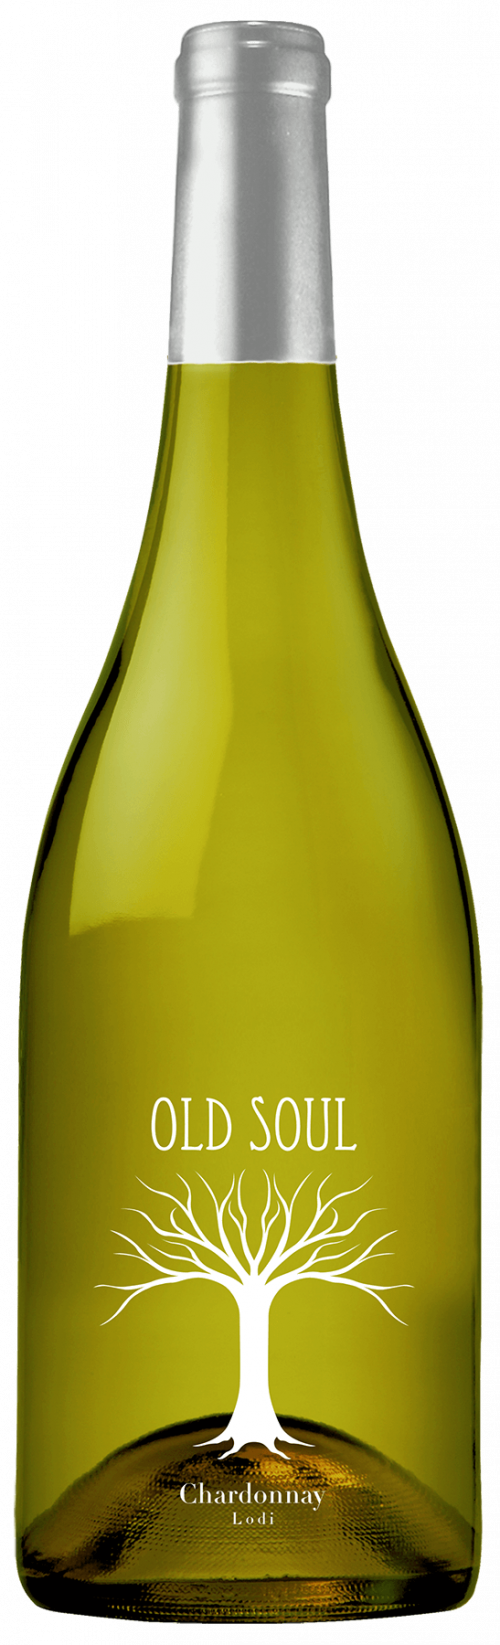 2017 Old Soul Chardonnay 750Ml